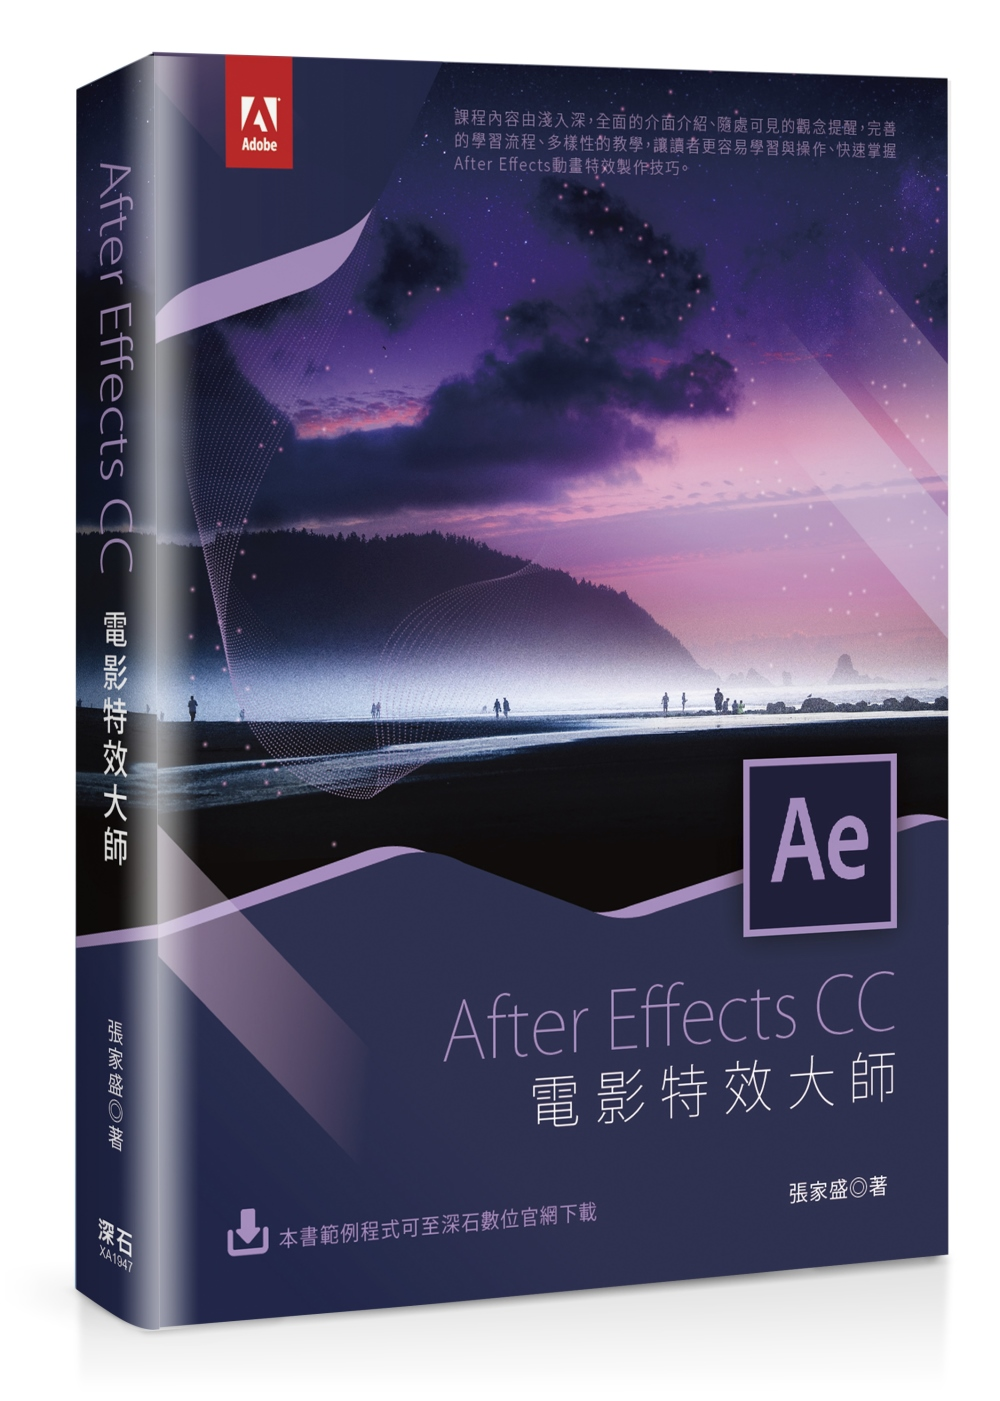 AfterEffects CC電影特效大師